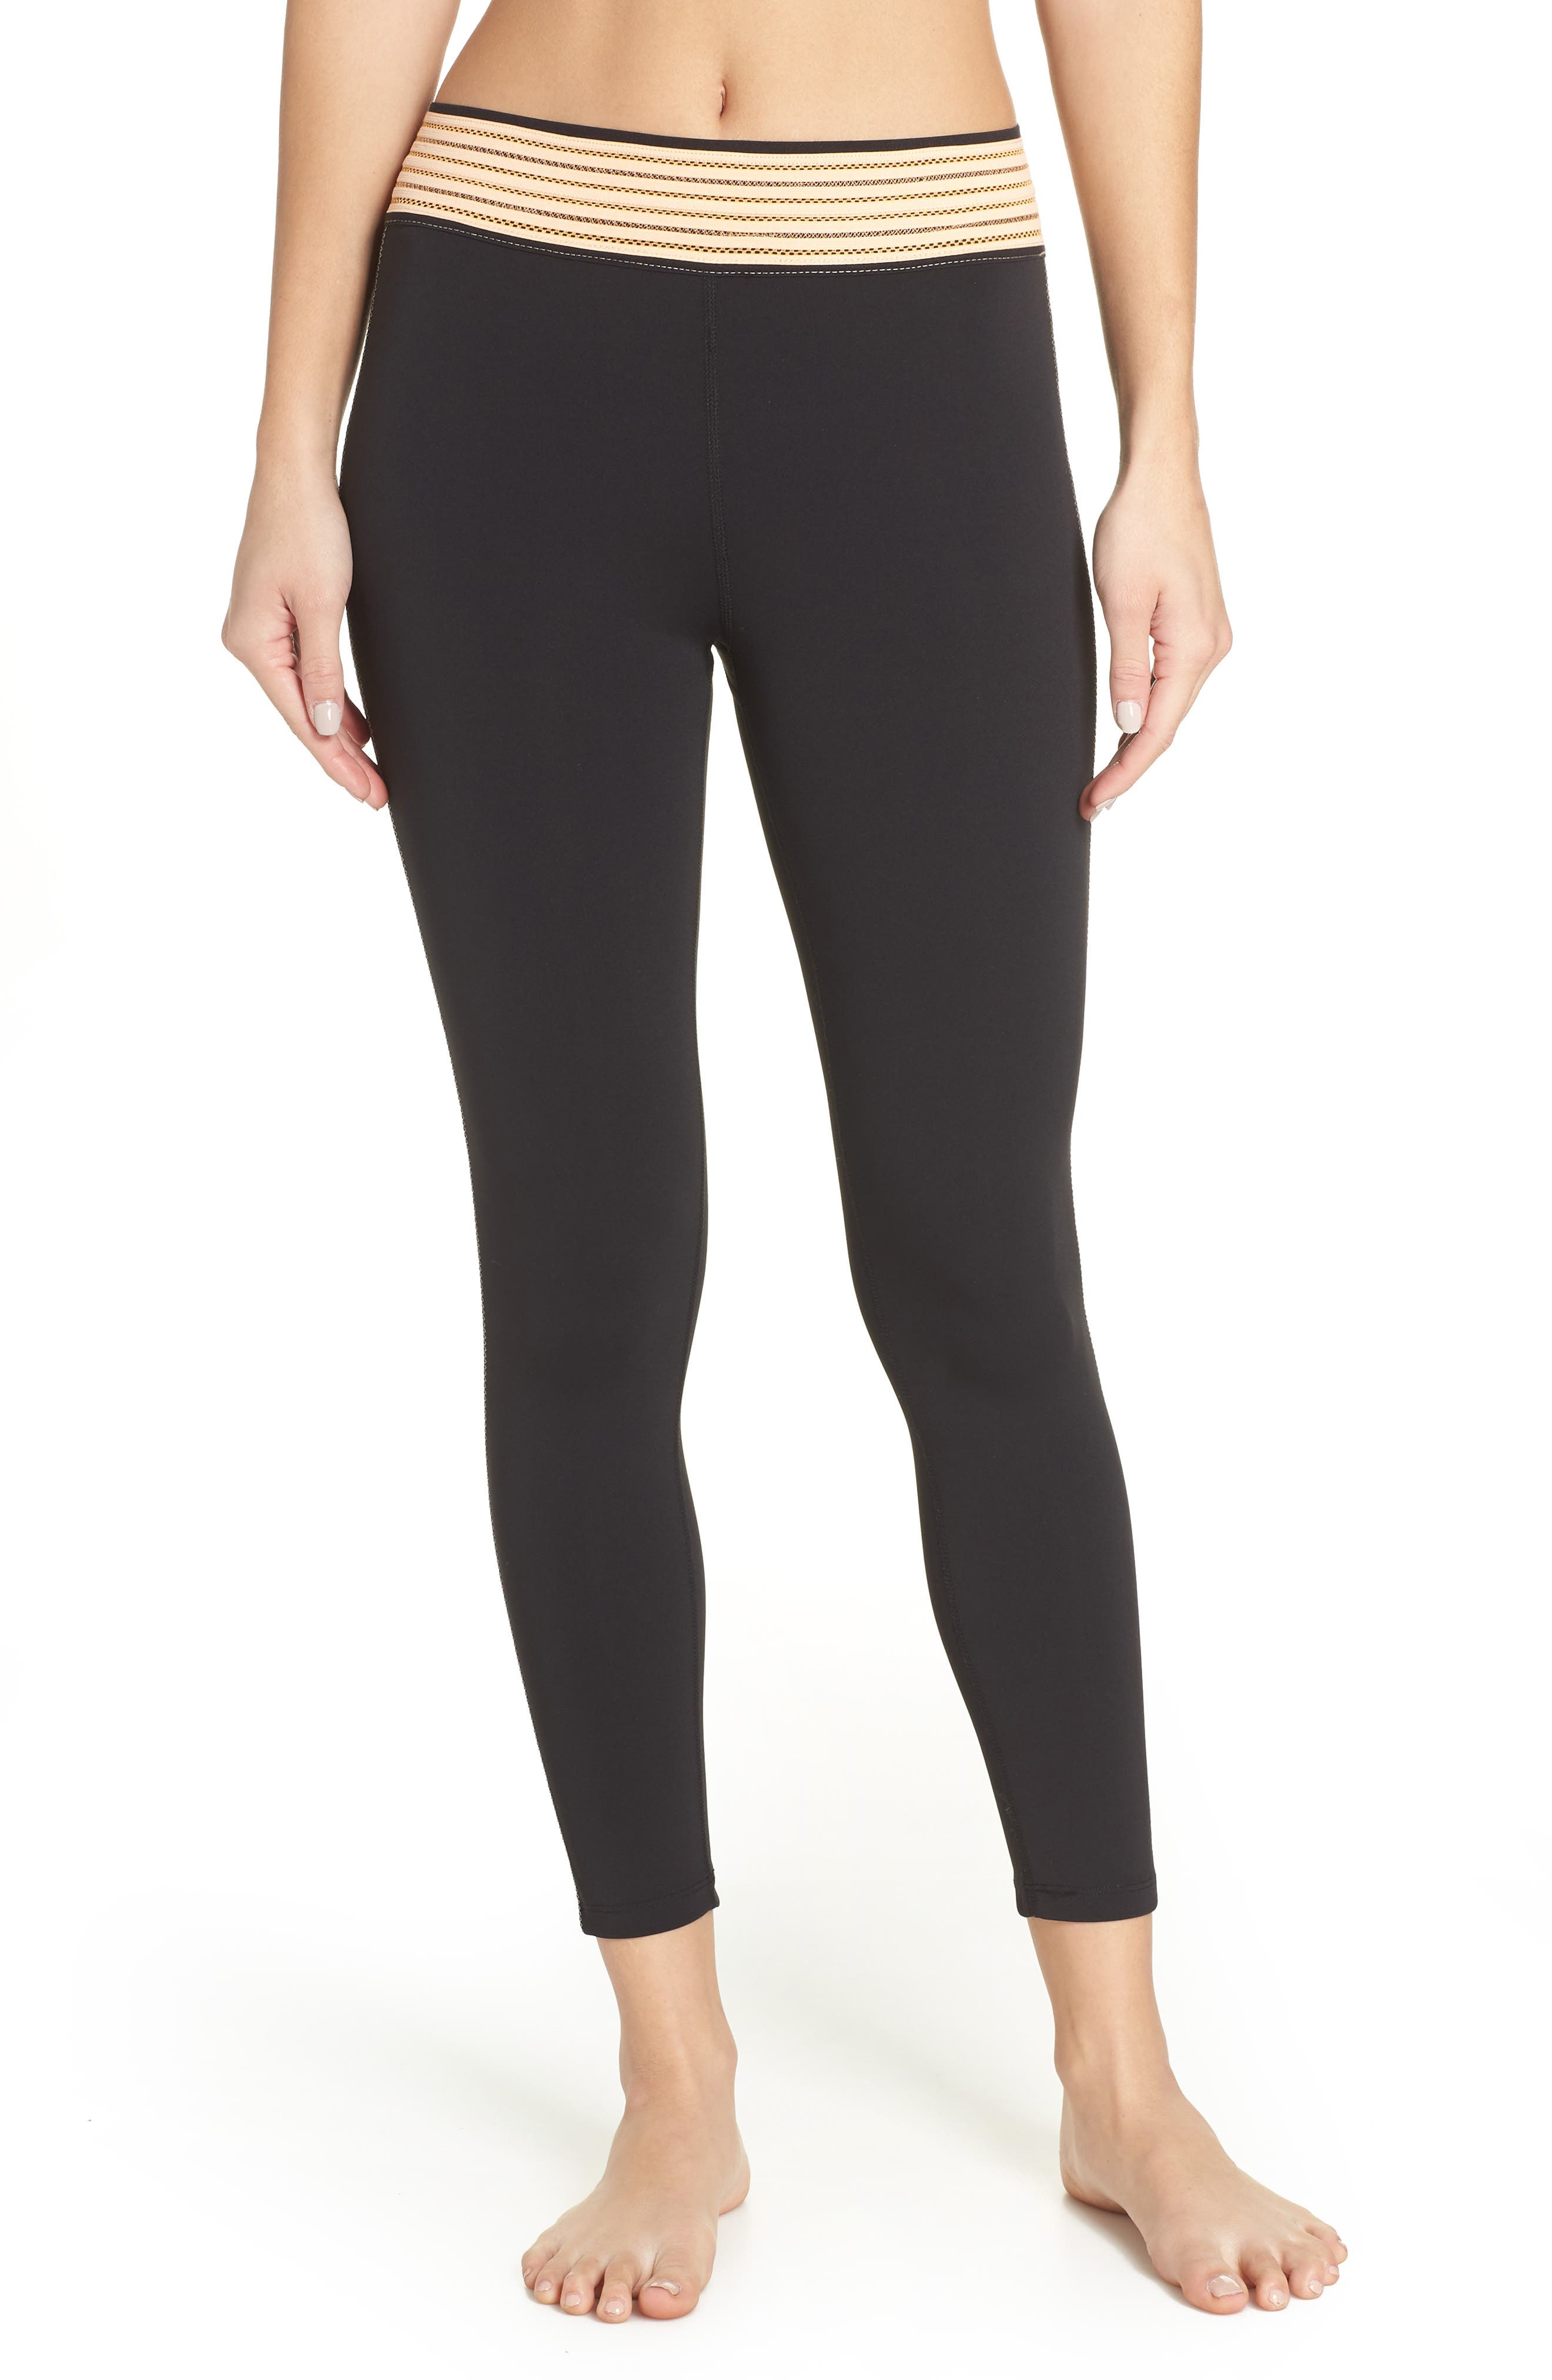 FREE PEOPLE Practice Makes Perfect Leggings, Main, color, 001